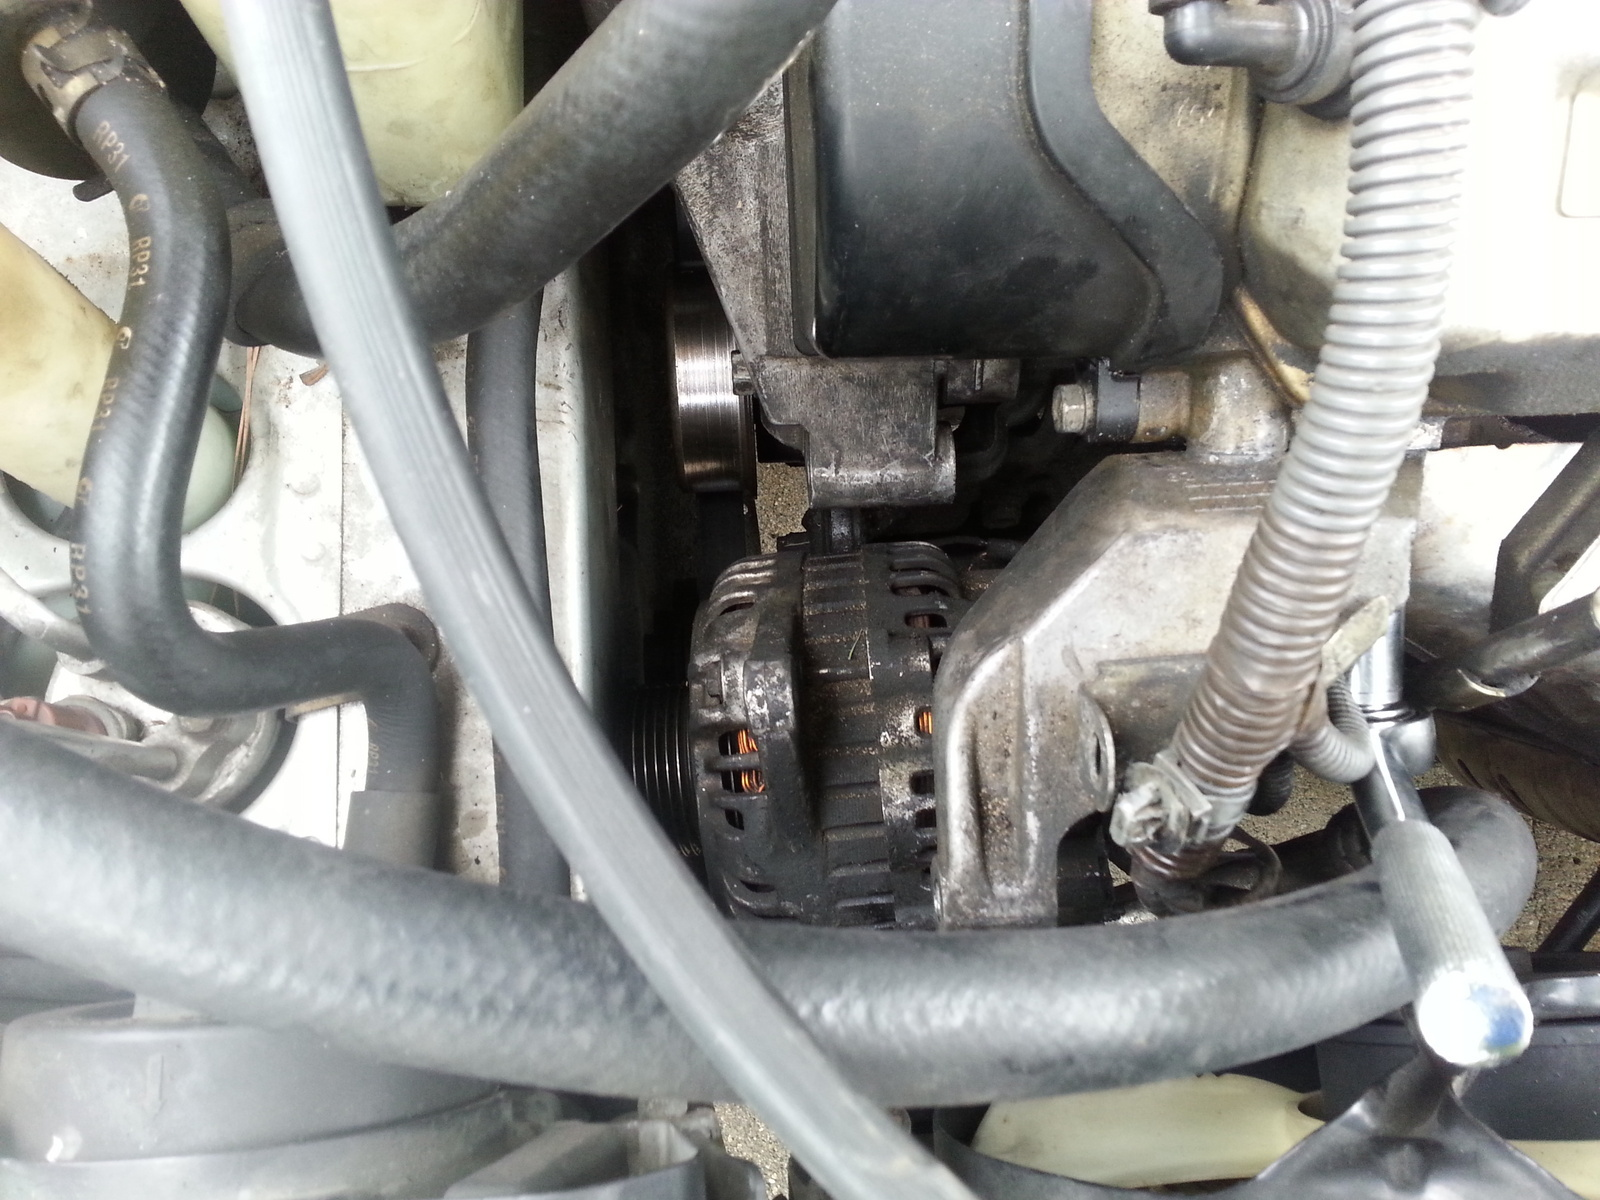 hight resolution of i have uninstalled the alternator to my 2002 mitsubishi galant es v6 but the mounting prevents me from pulling the alternator out